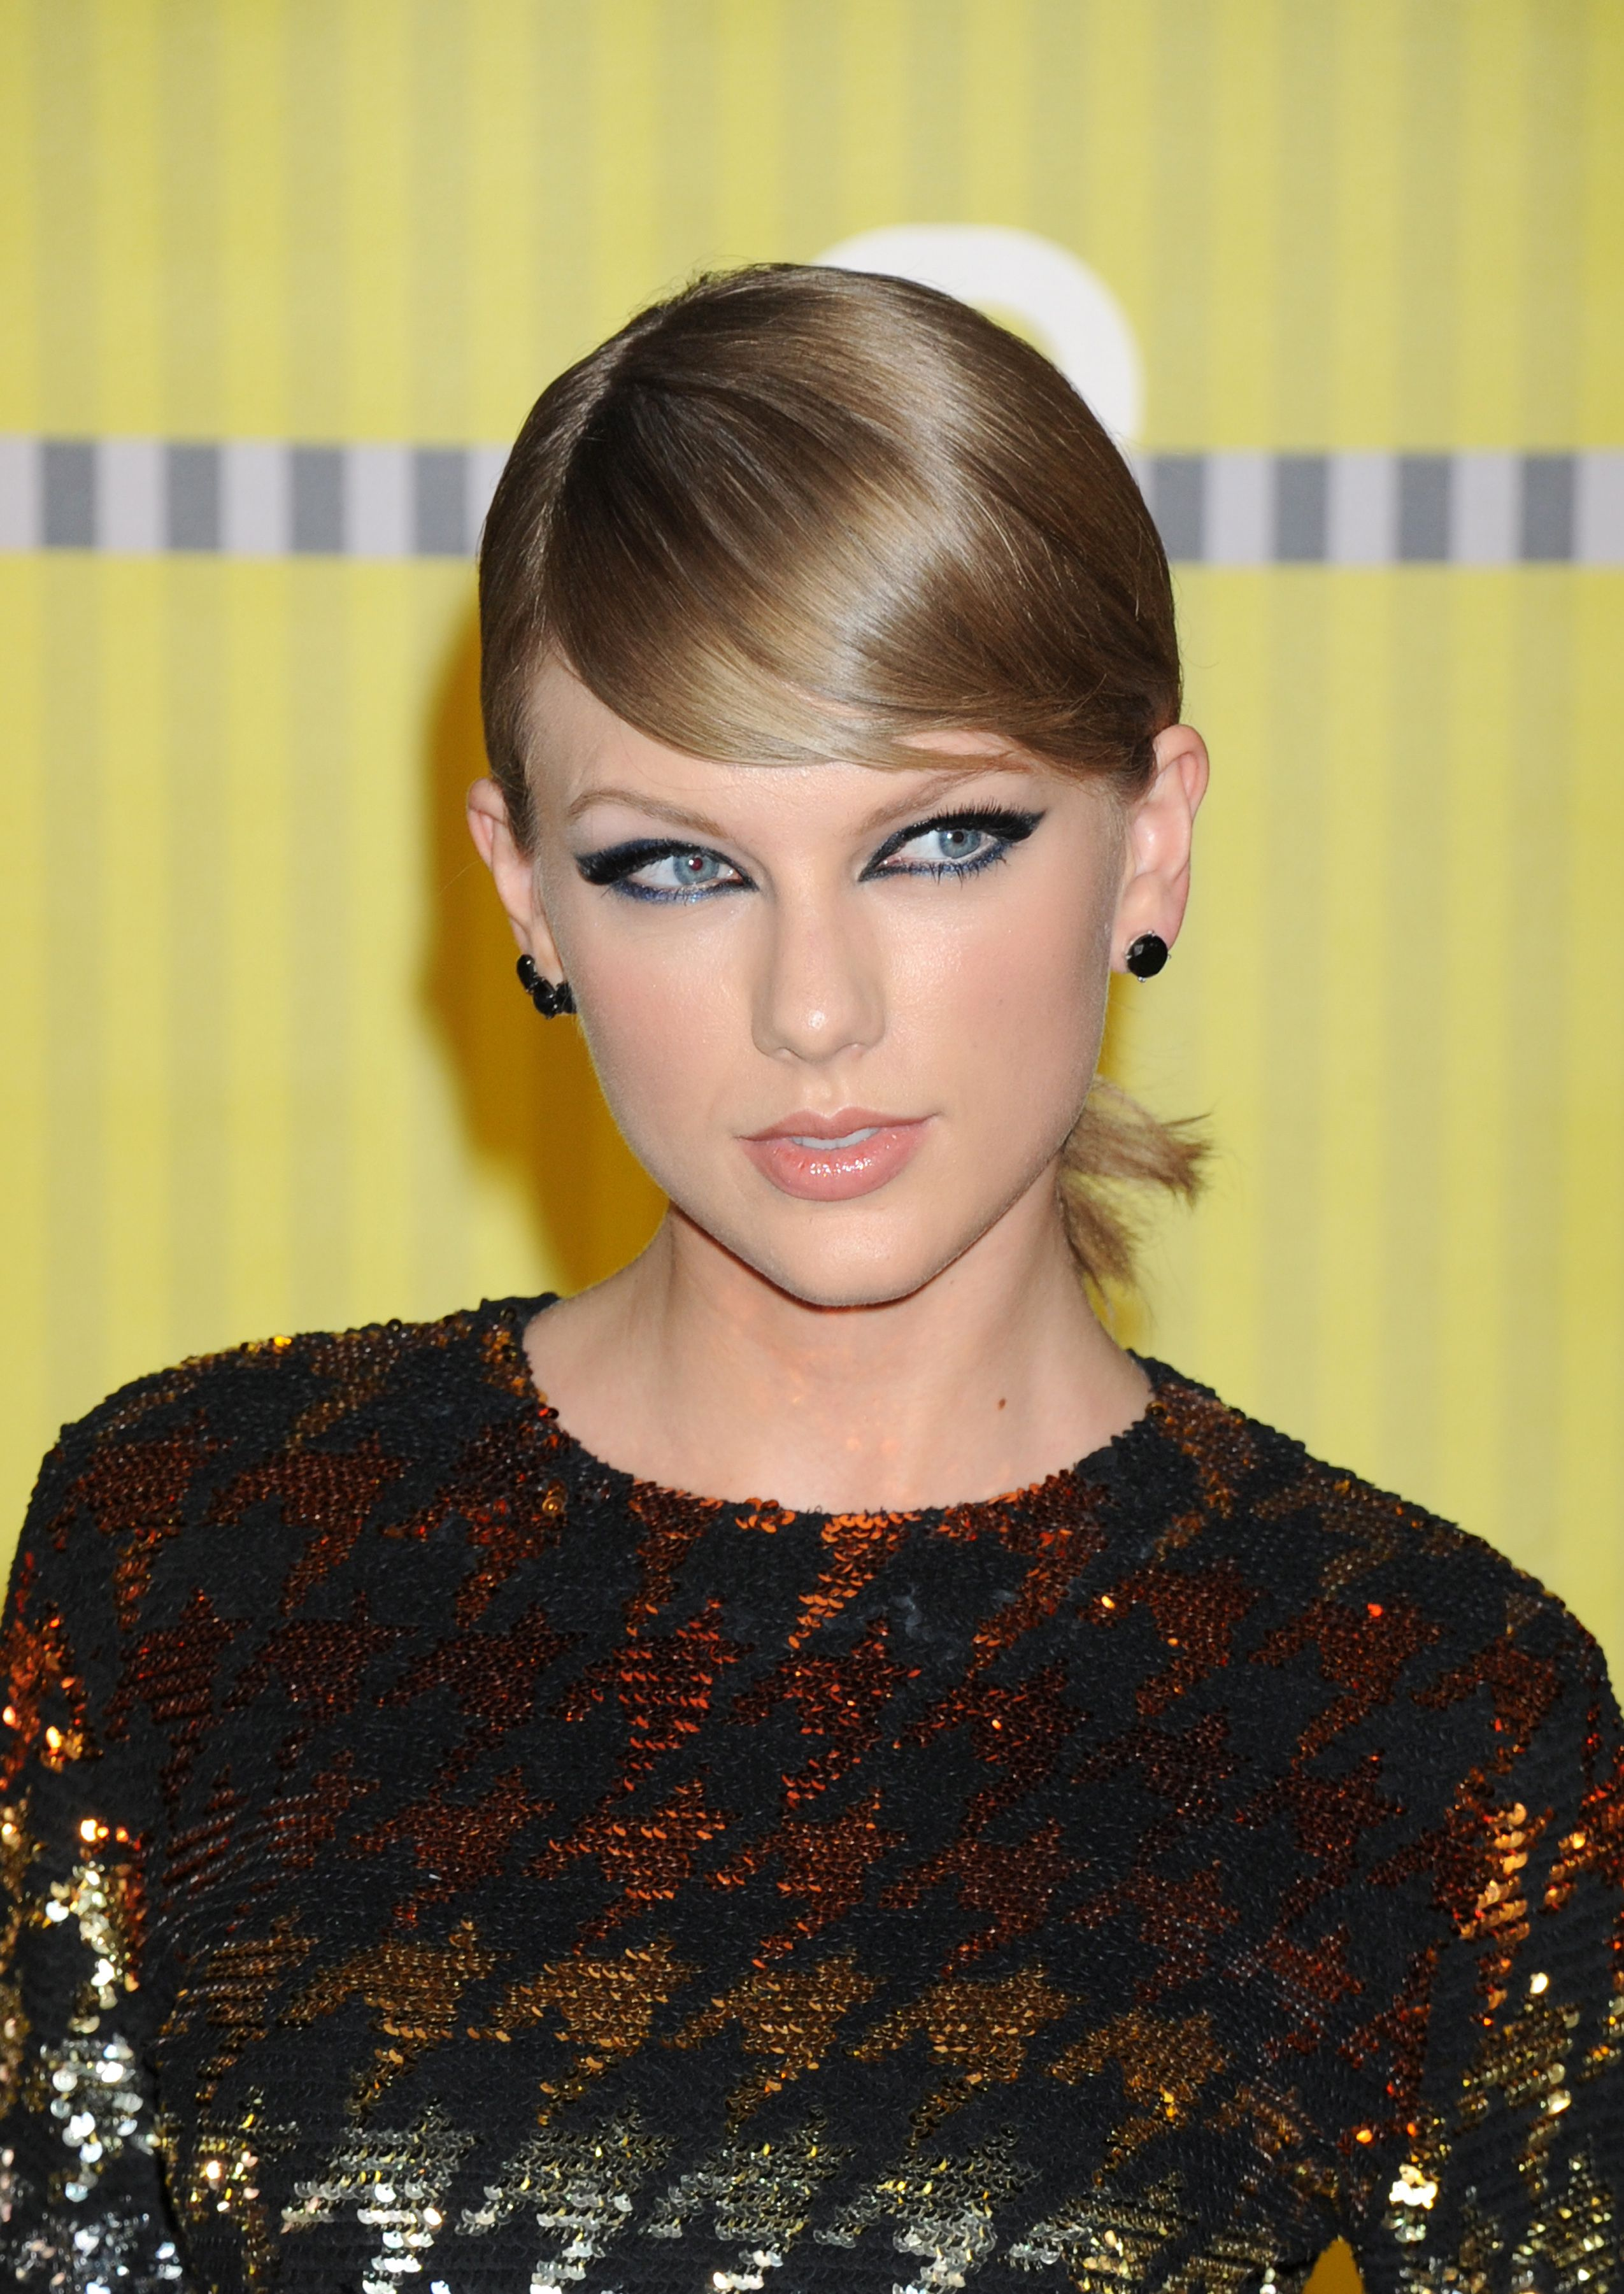 Taylor Swift arrives to the 2015 MTV Video Music Awards at Microsoft Theater on August 30, 2015 in Los Angeles, California.